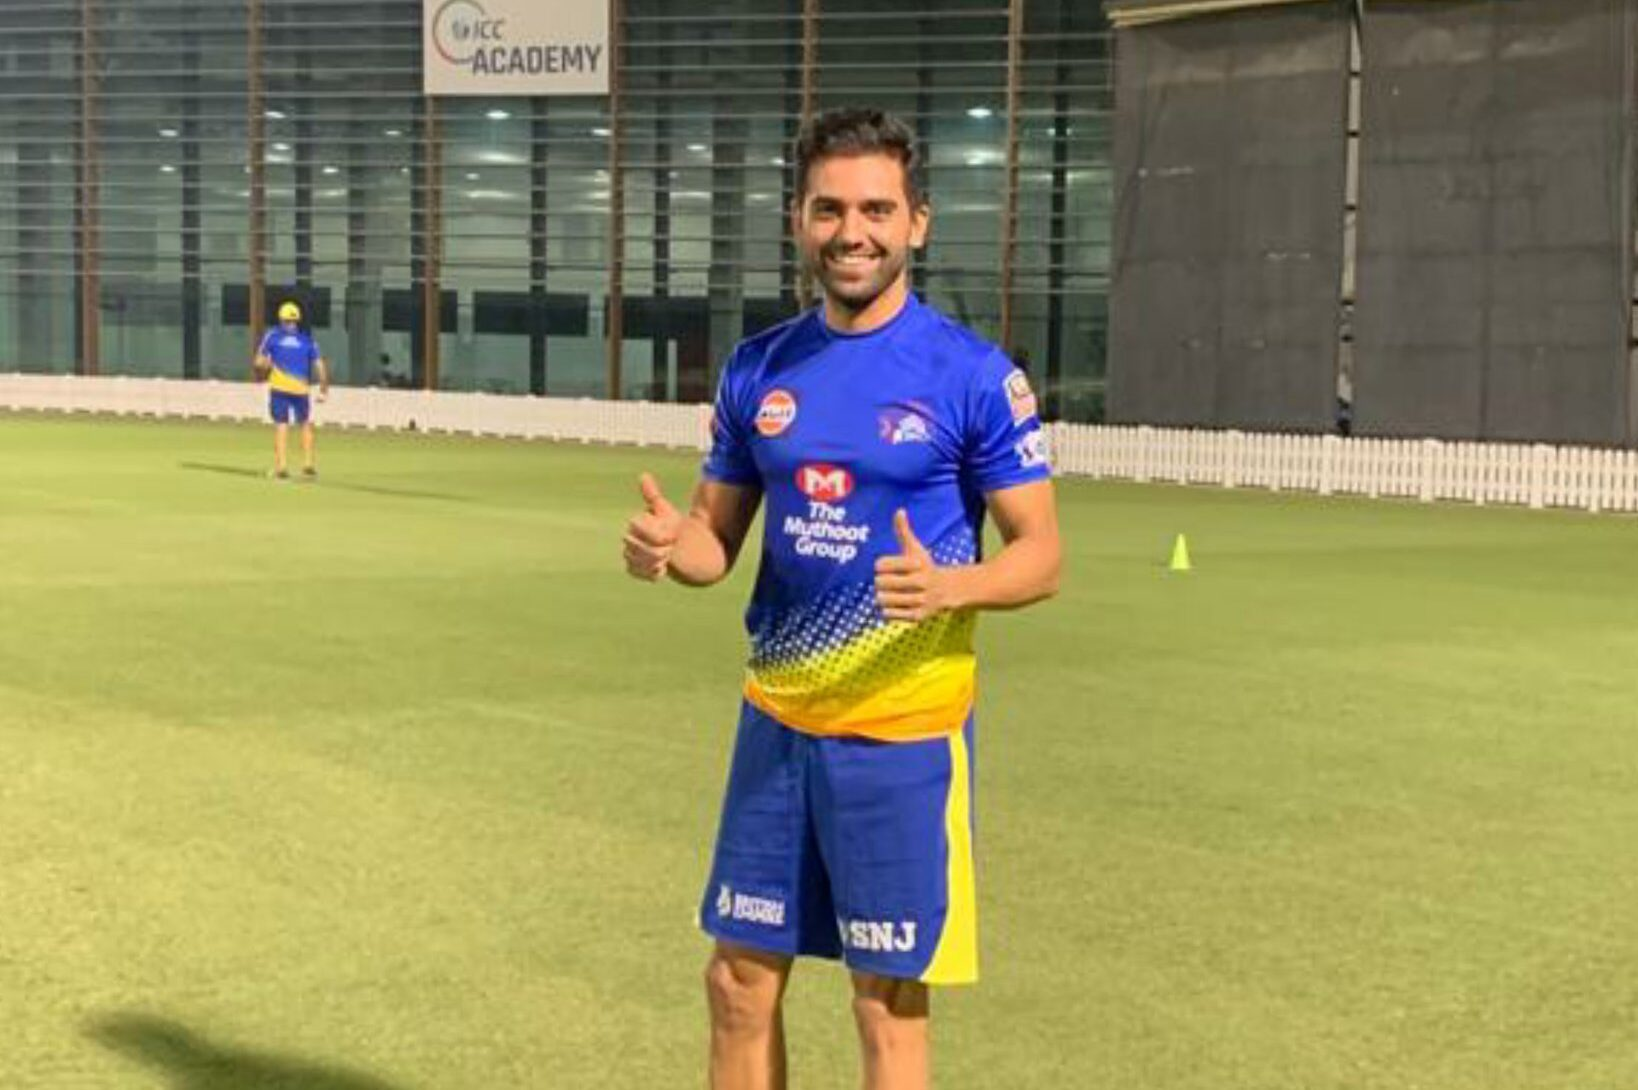 Deepak Chahar rejoined the CSK team after recovering from COVID-19